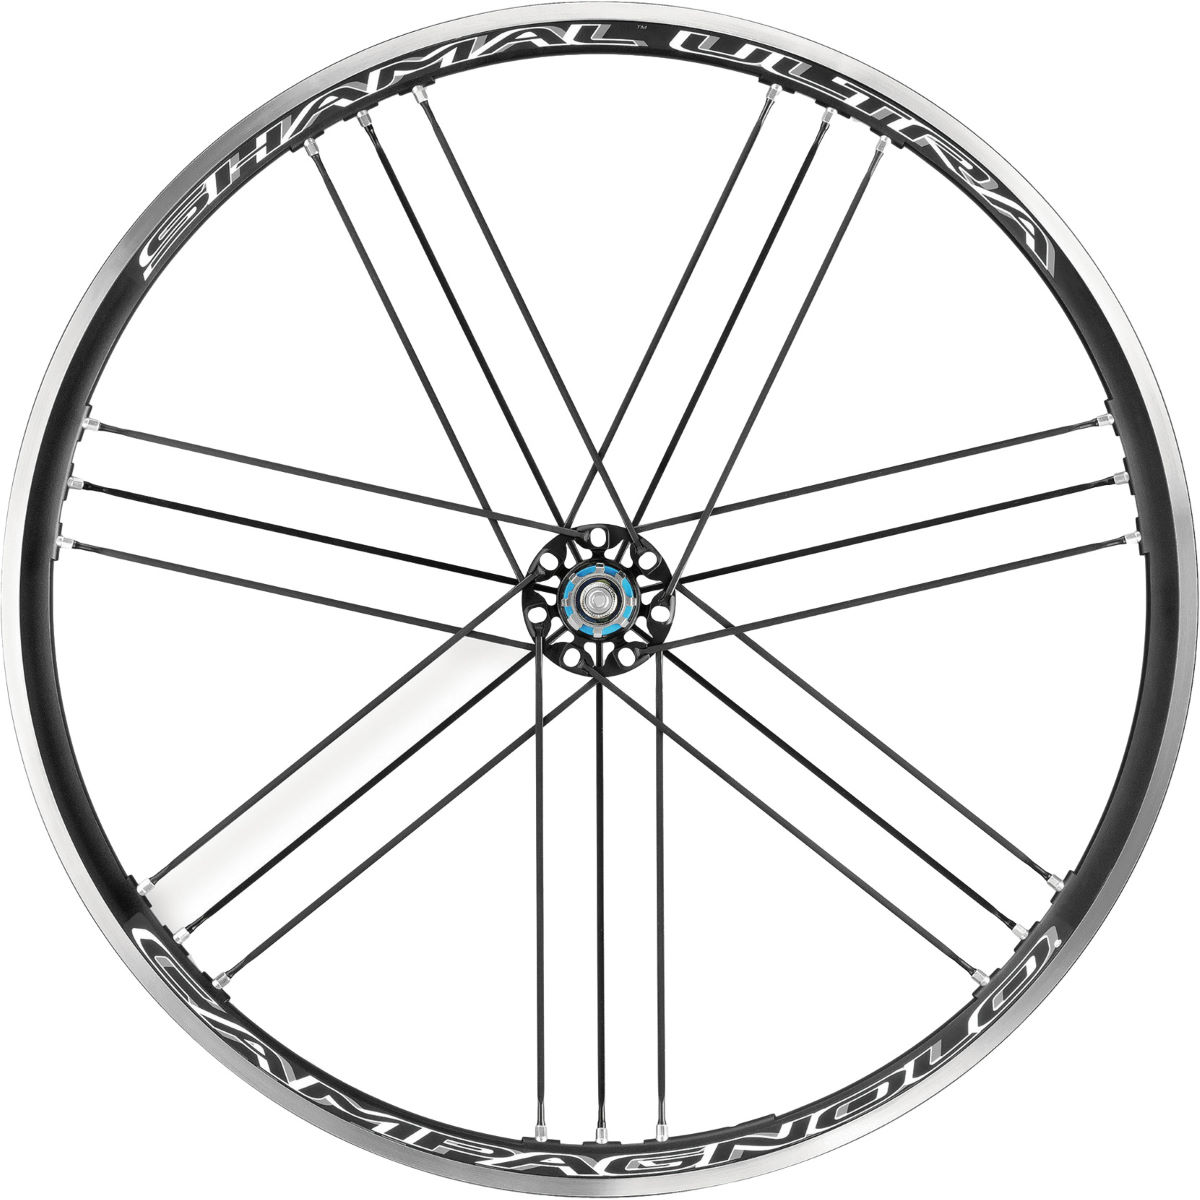 Campagnolo Shamal Ultra C17 Rear Road Wheel - Ruedas traseras